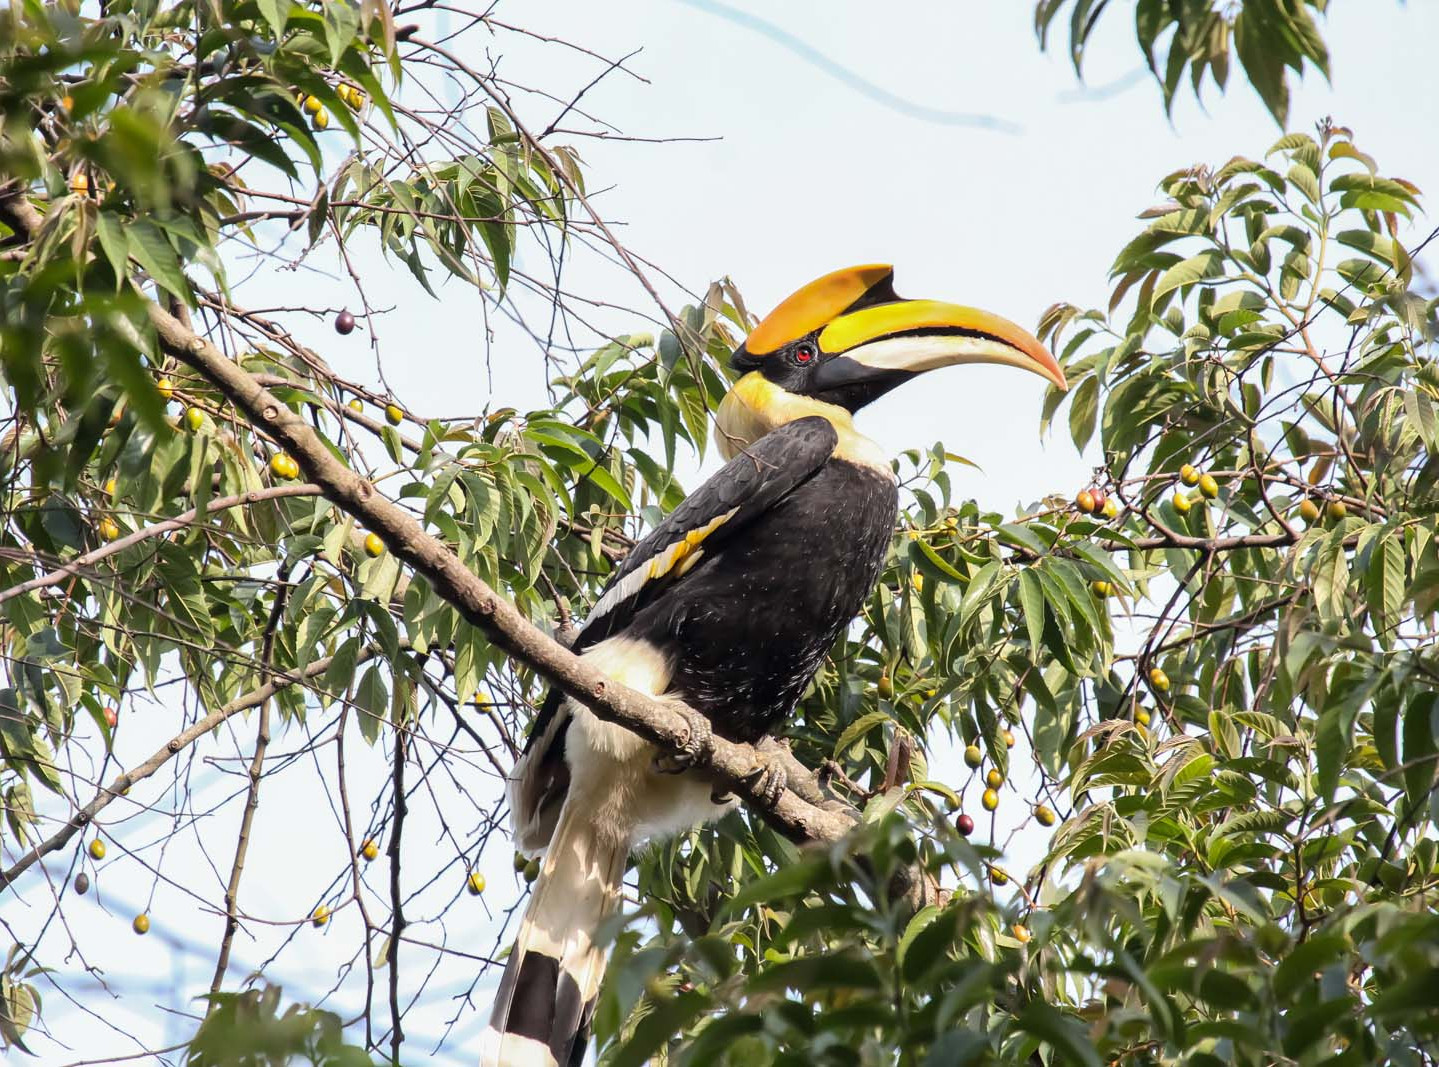 Great_Indian_Hornbill.jpg